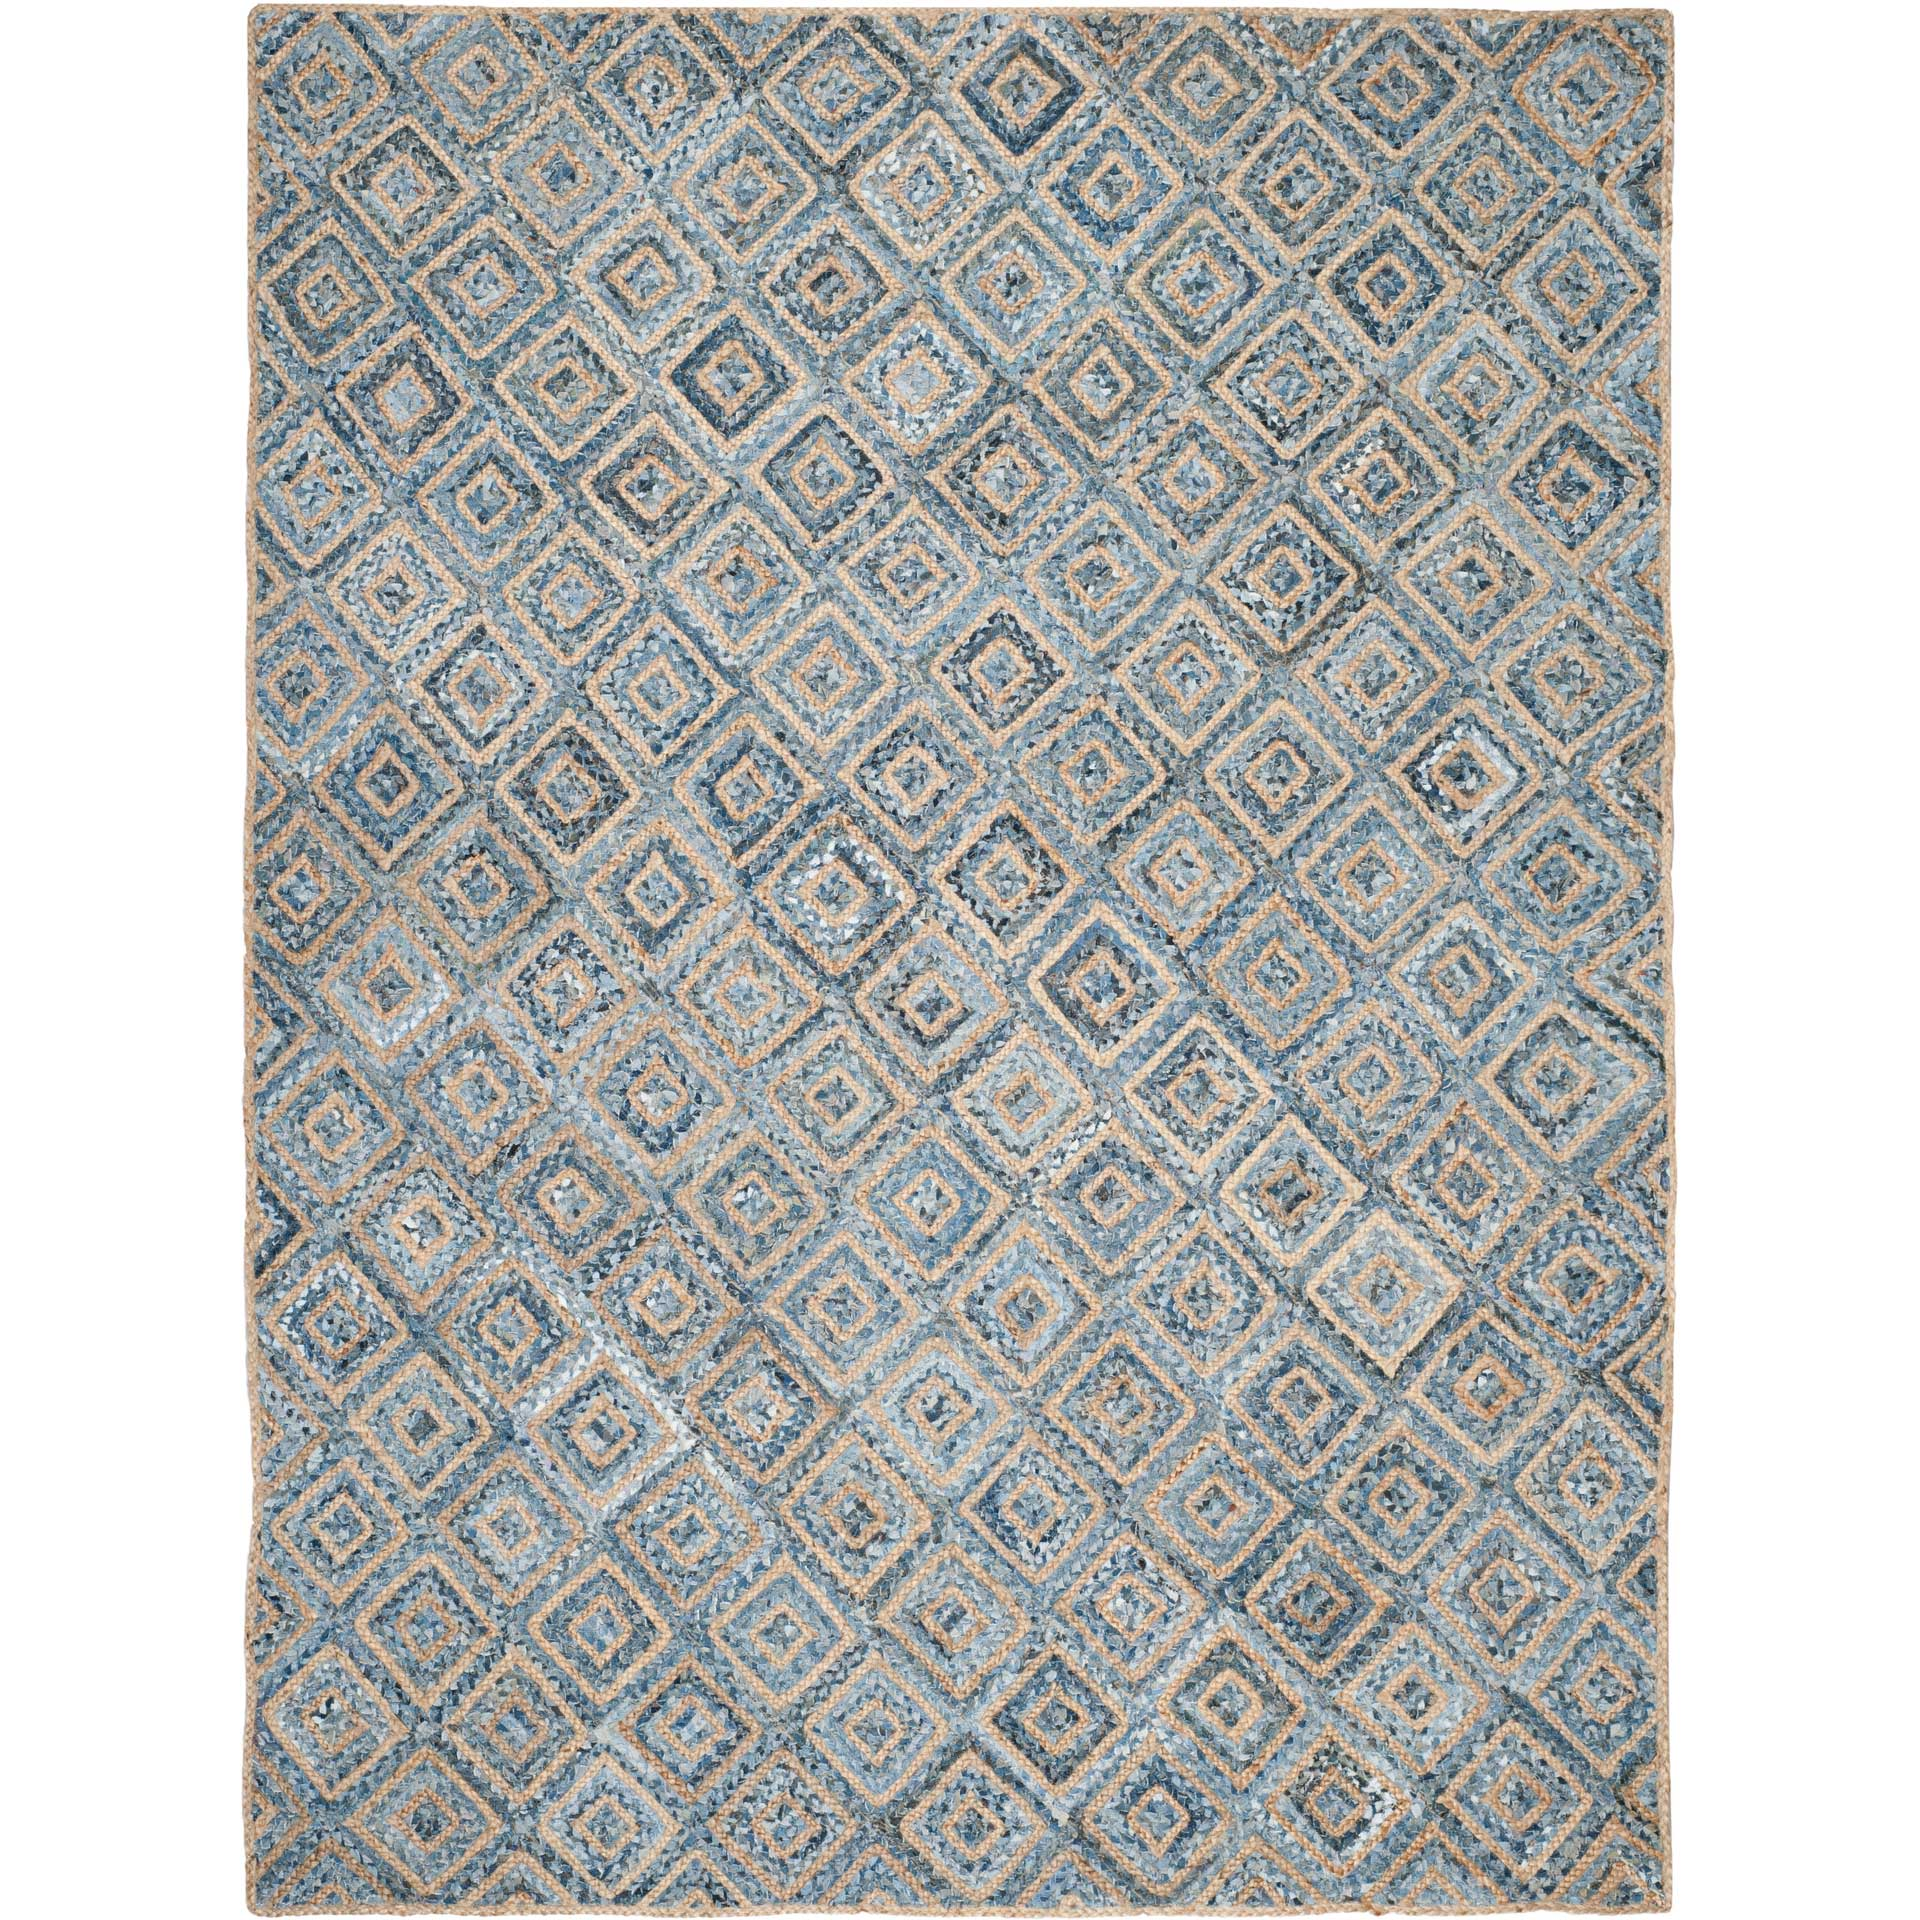 Cape Cod Natural/Blue Area Rug